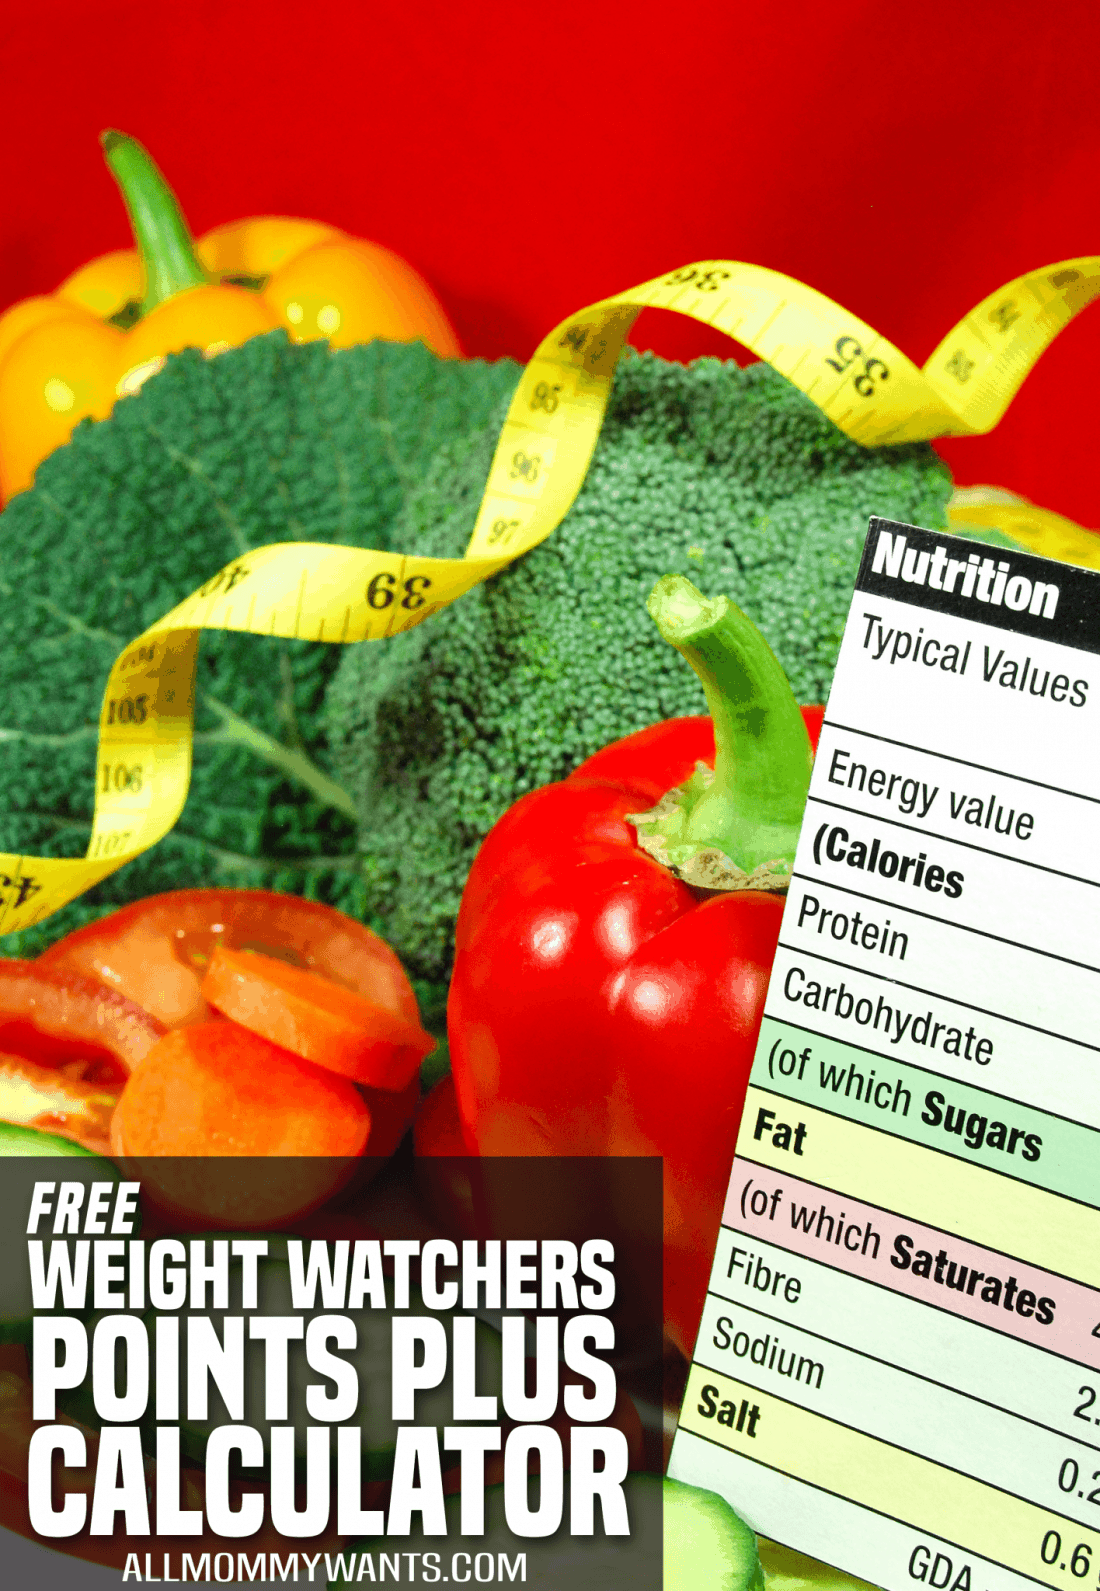 are vegetables free on weight watchers points plus